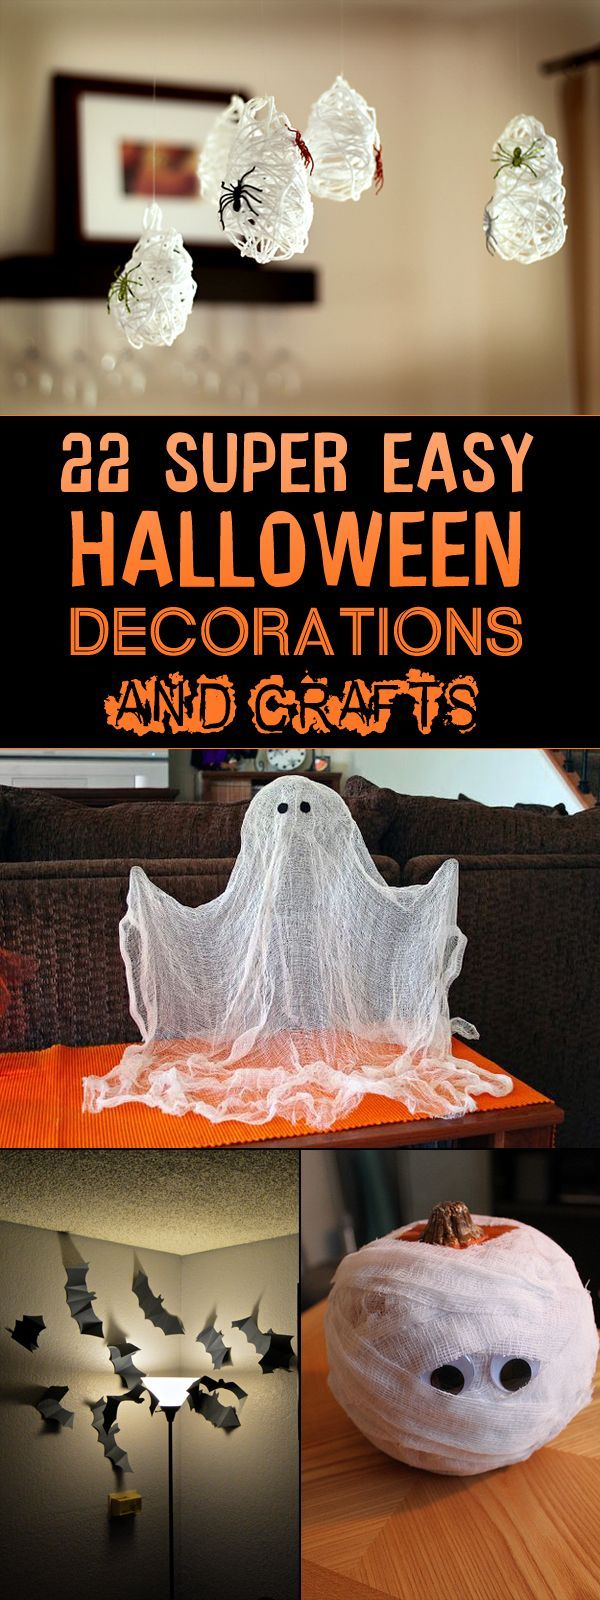 22 super easy halloween decorations and crafts you can make yourself 22 super easy halloween decorations and crafts you can make yourself halloween decorating projects and solutioingenieria Choice Image